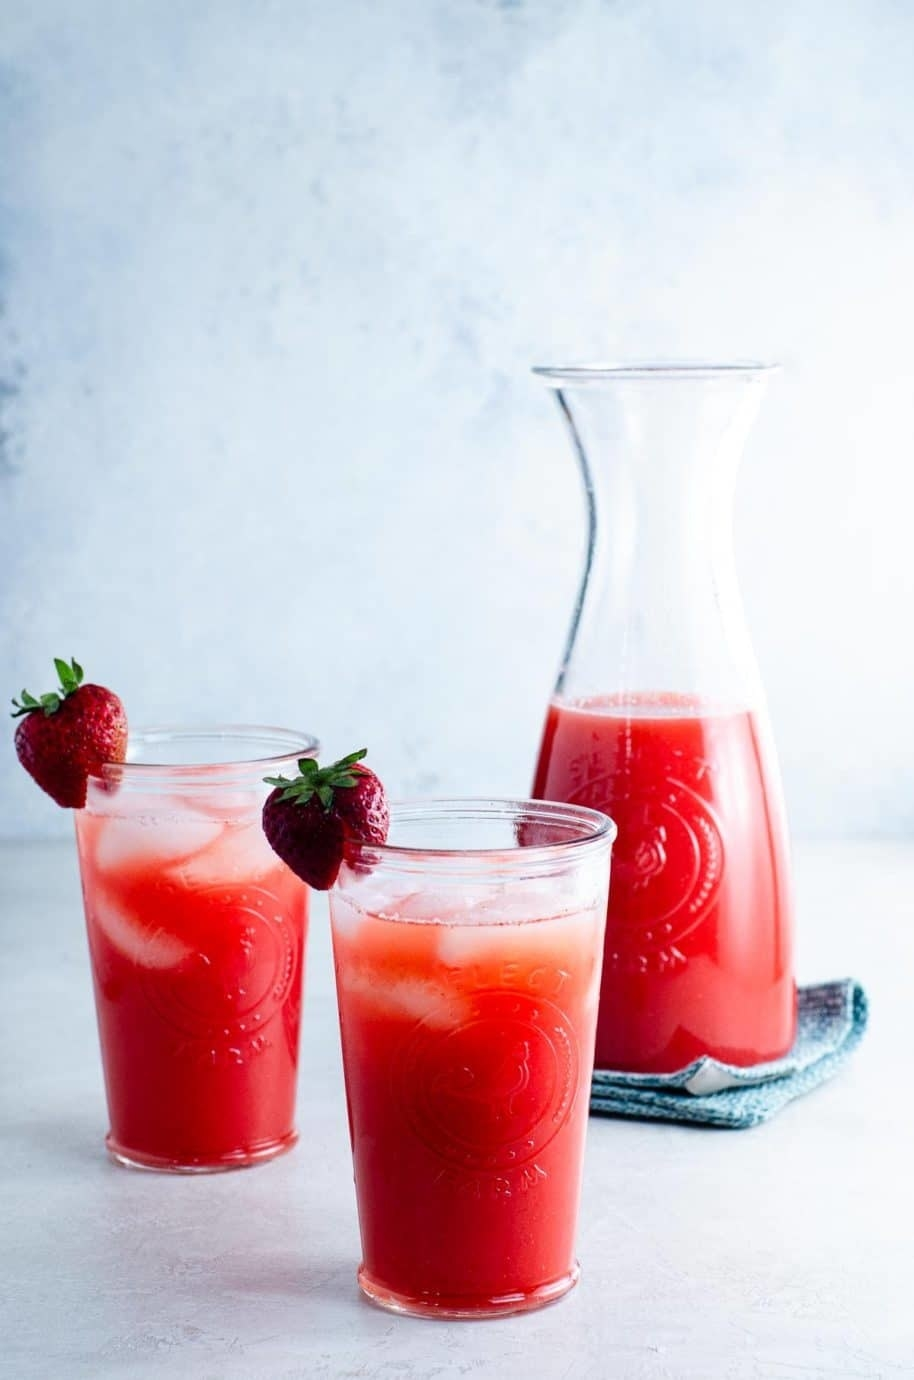 A carafe and two glasses of strawberry agua fresca